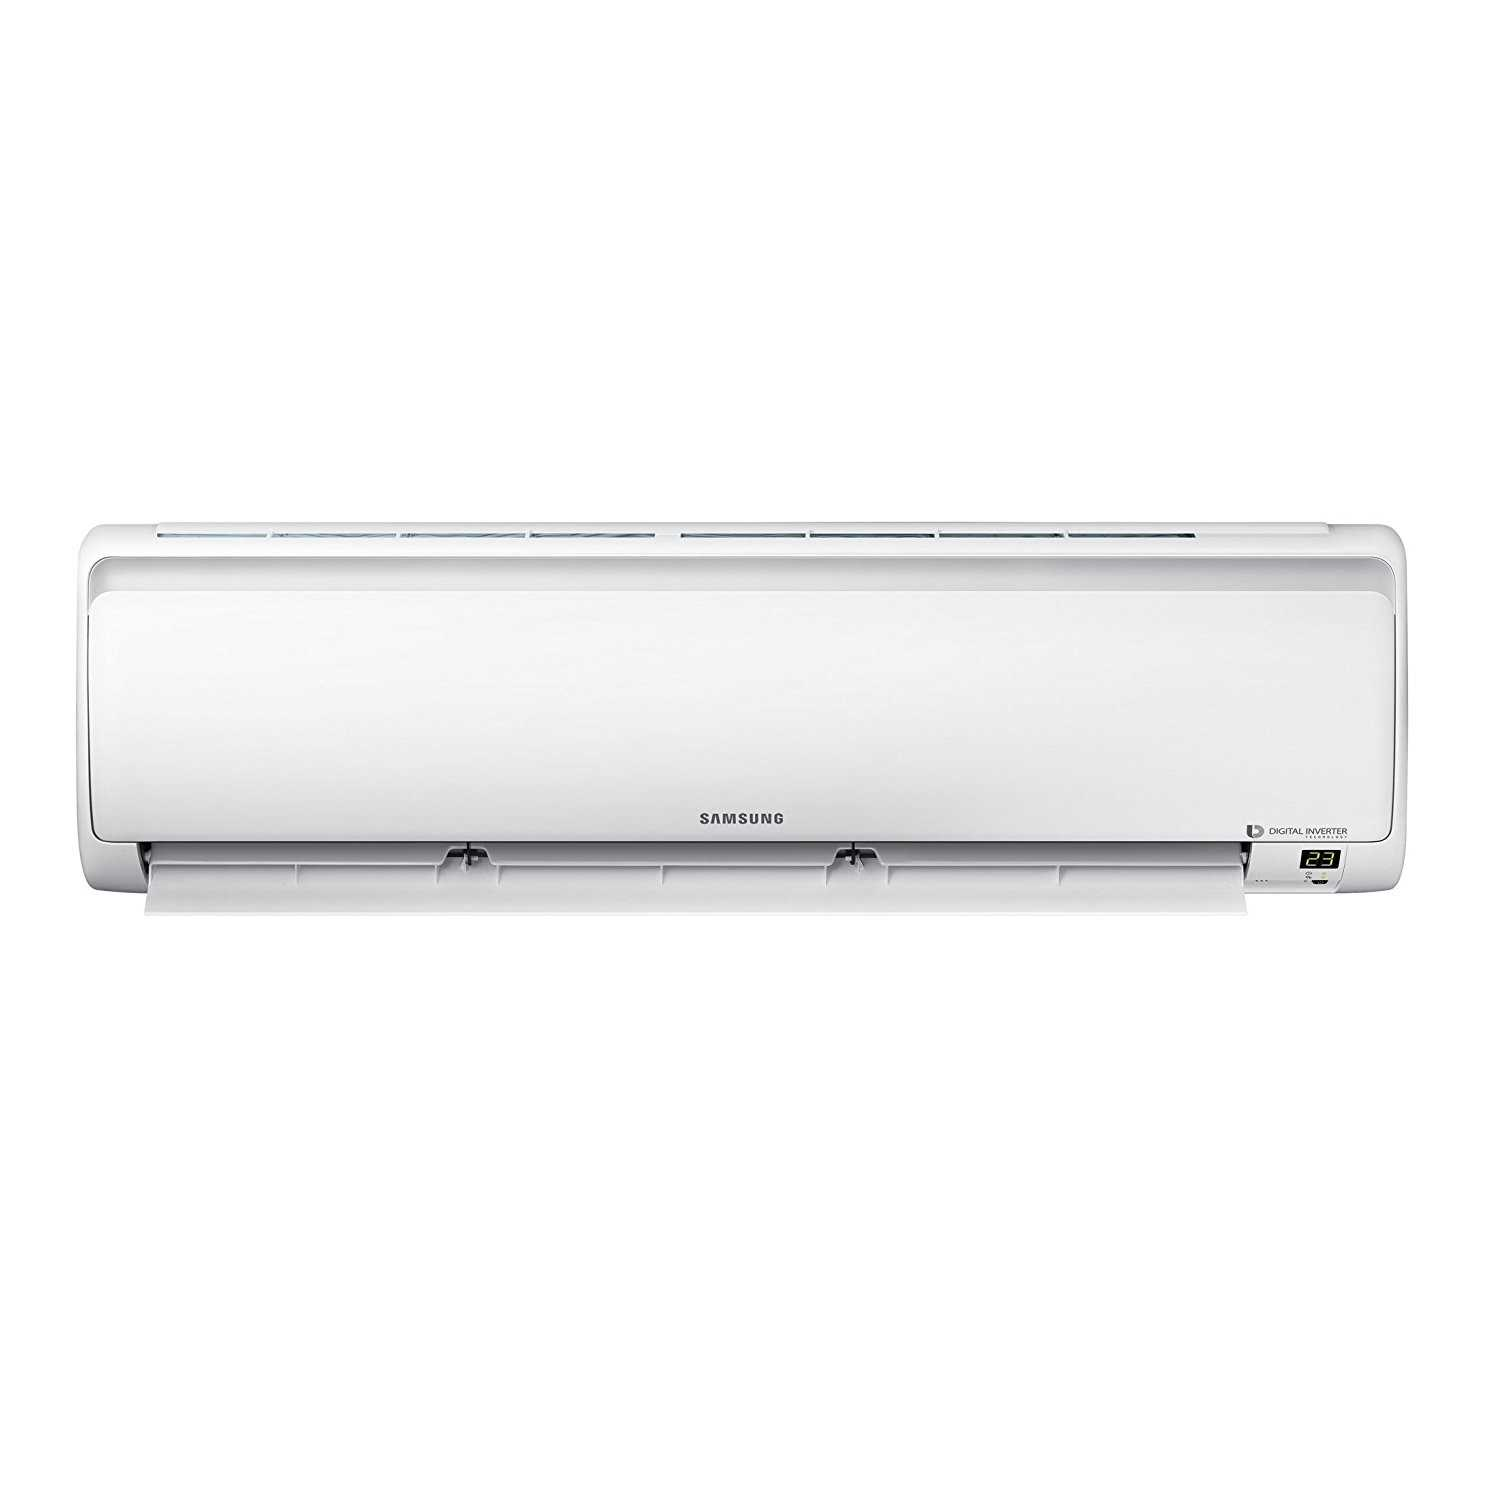 Samsung AR12NV3PAWK 1 Ton 3 Star Inverter Split AC